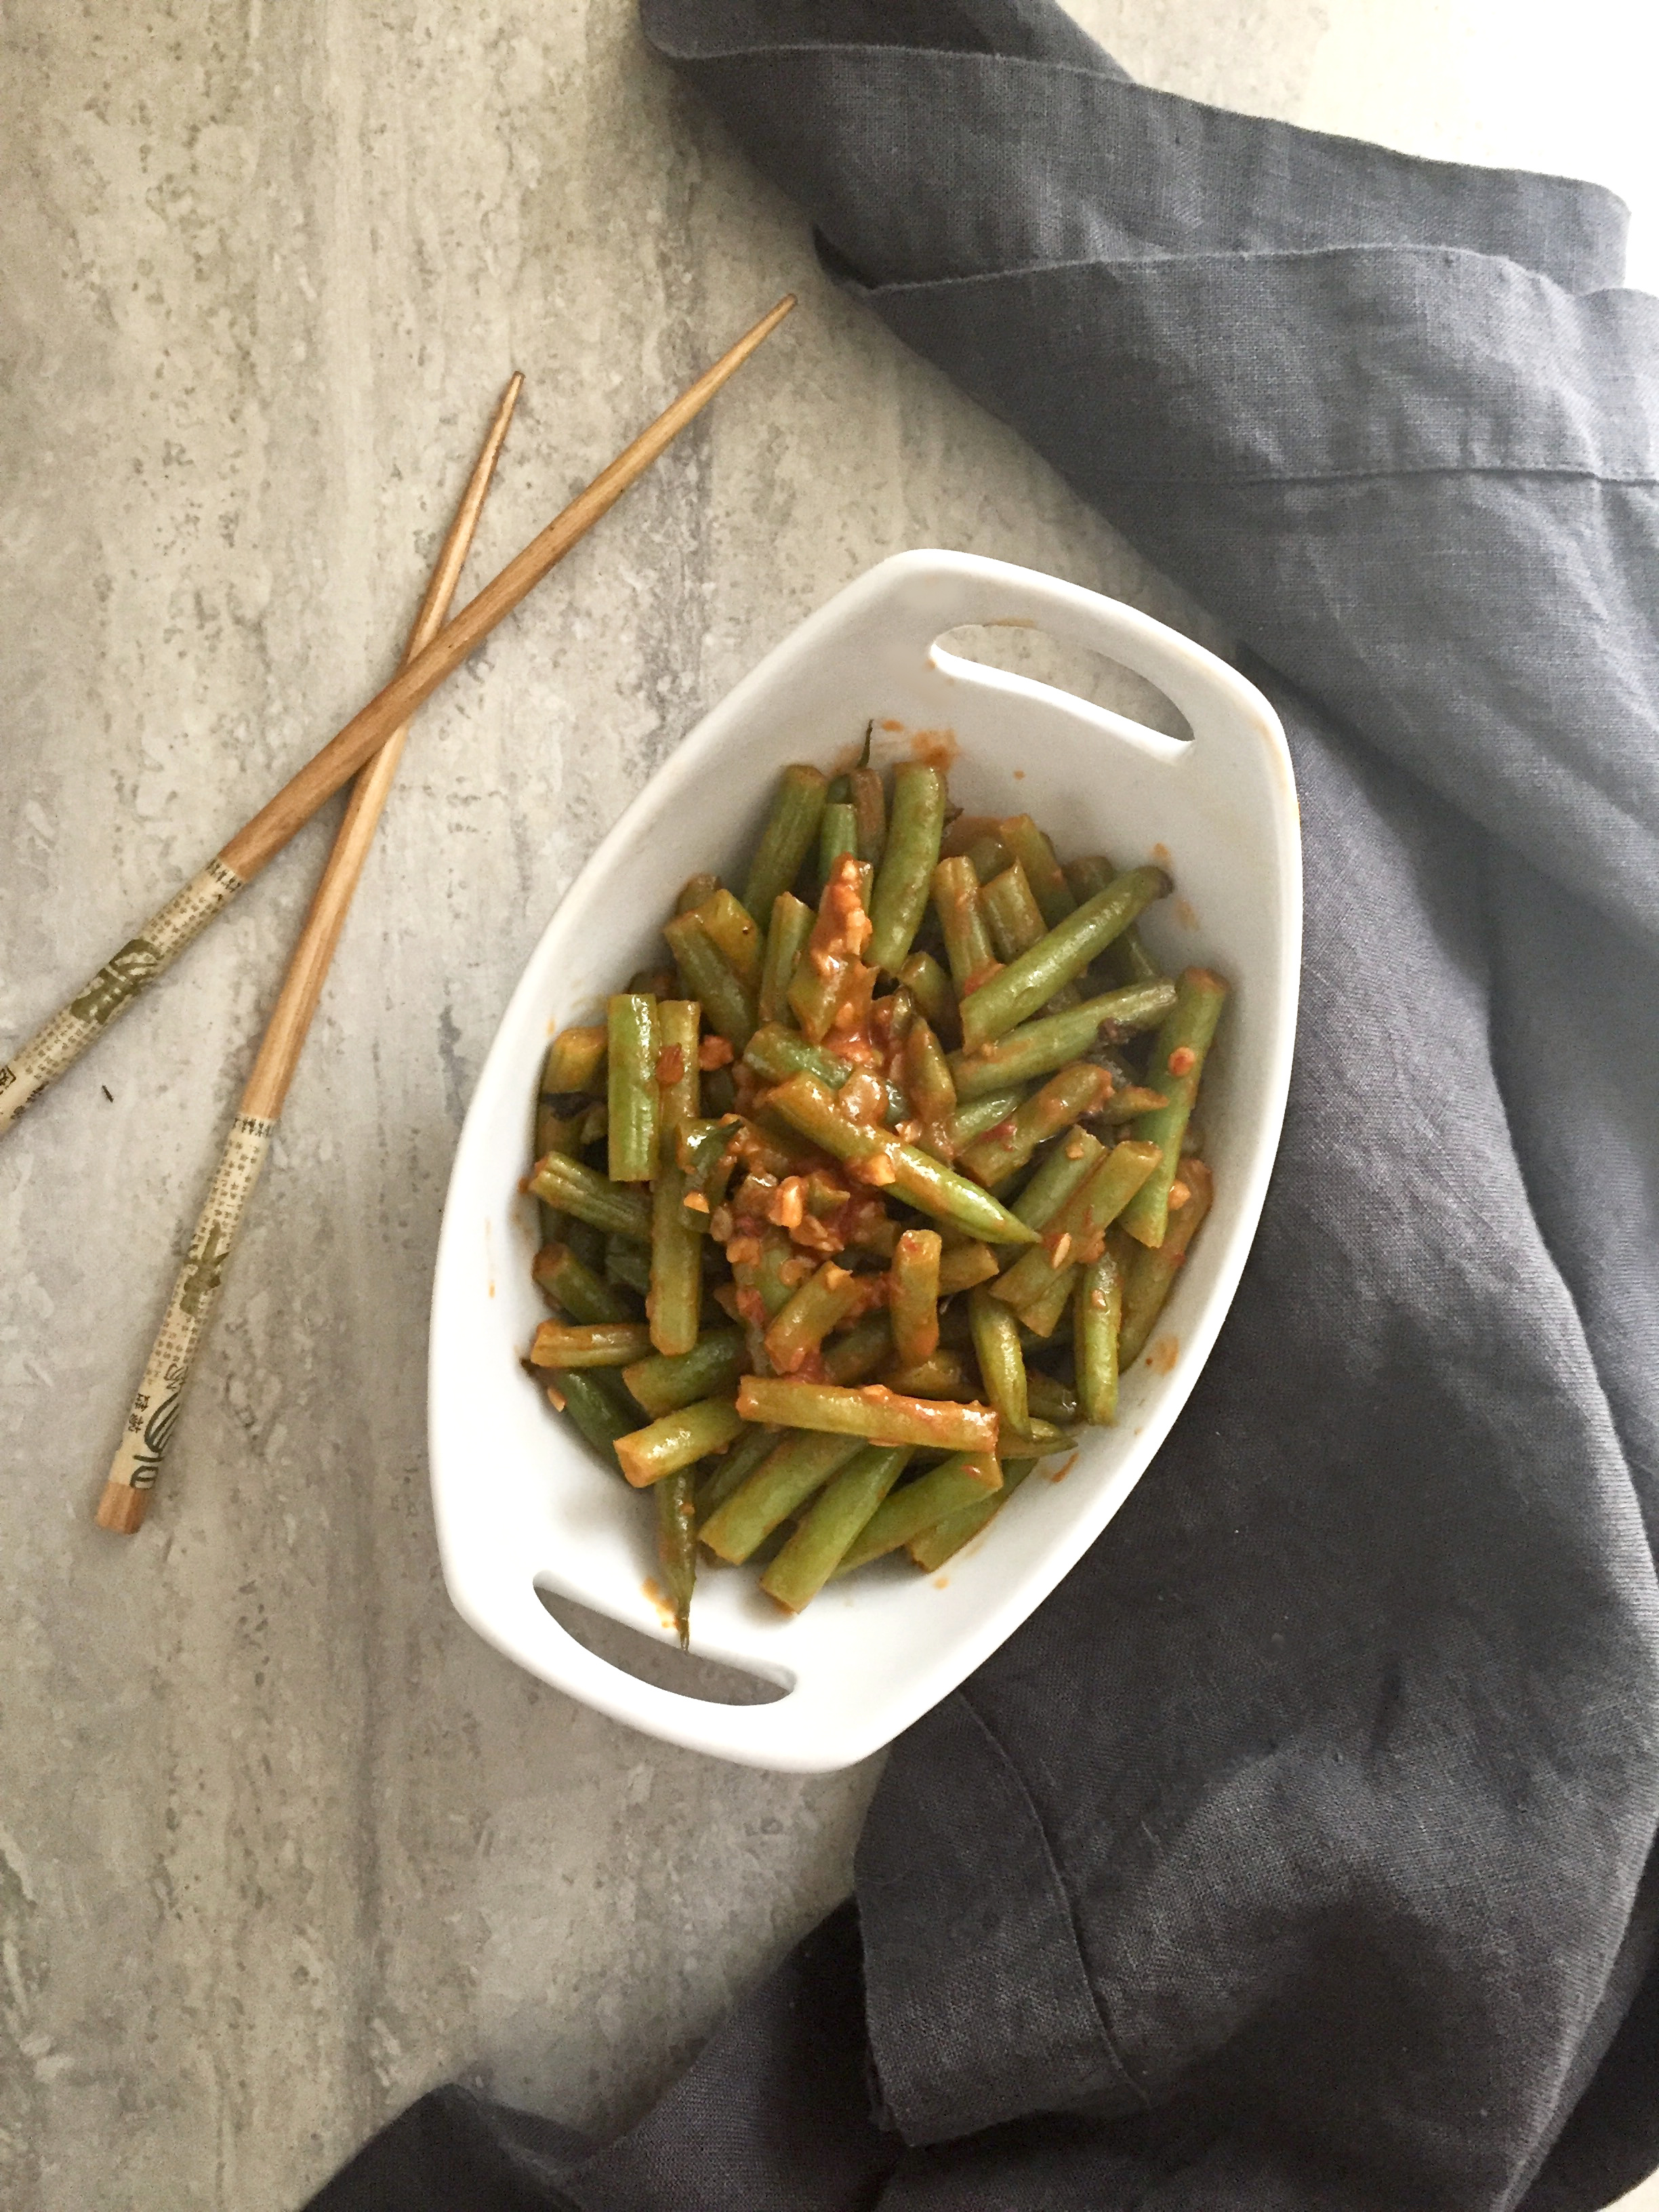 Korean green beans recipe from the food and lifestyle blog, SoufflesandSawdust.com